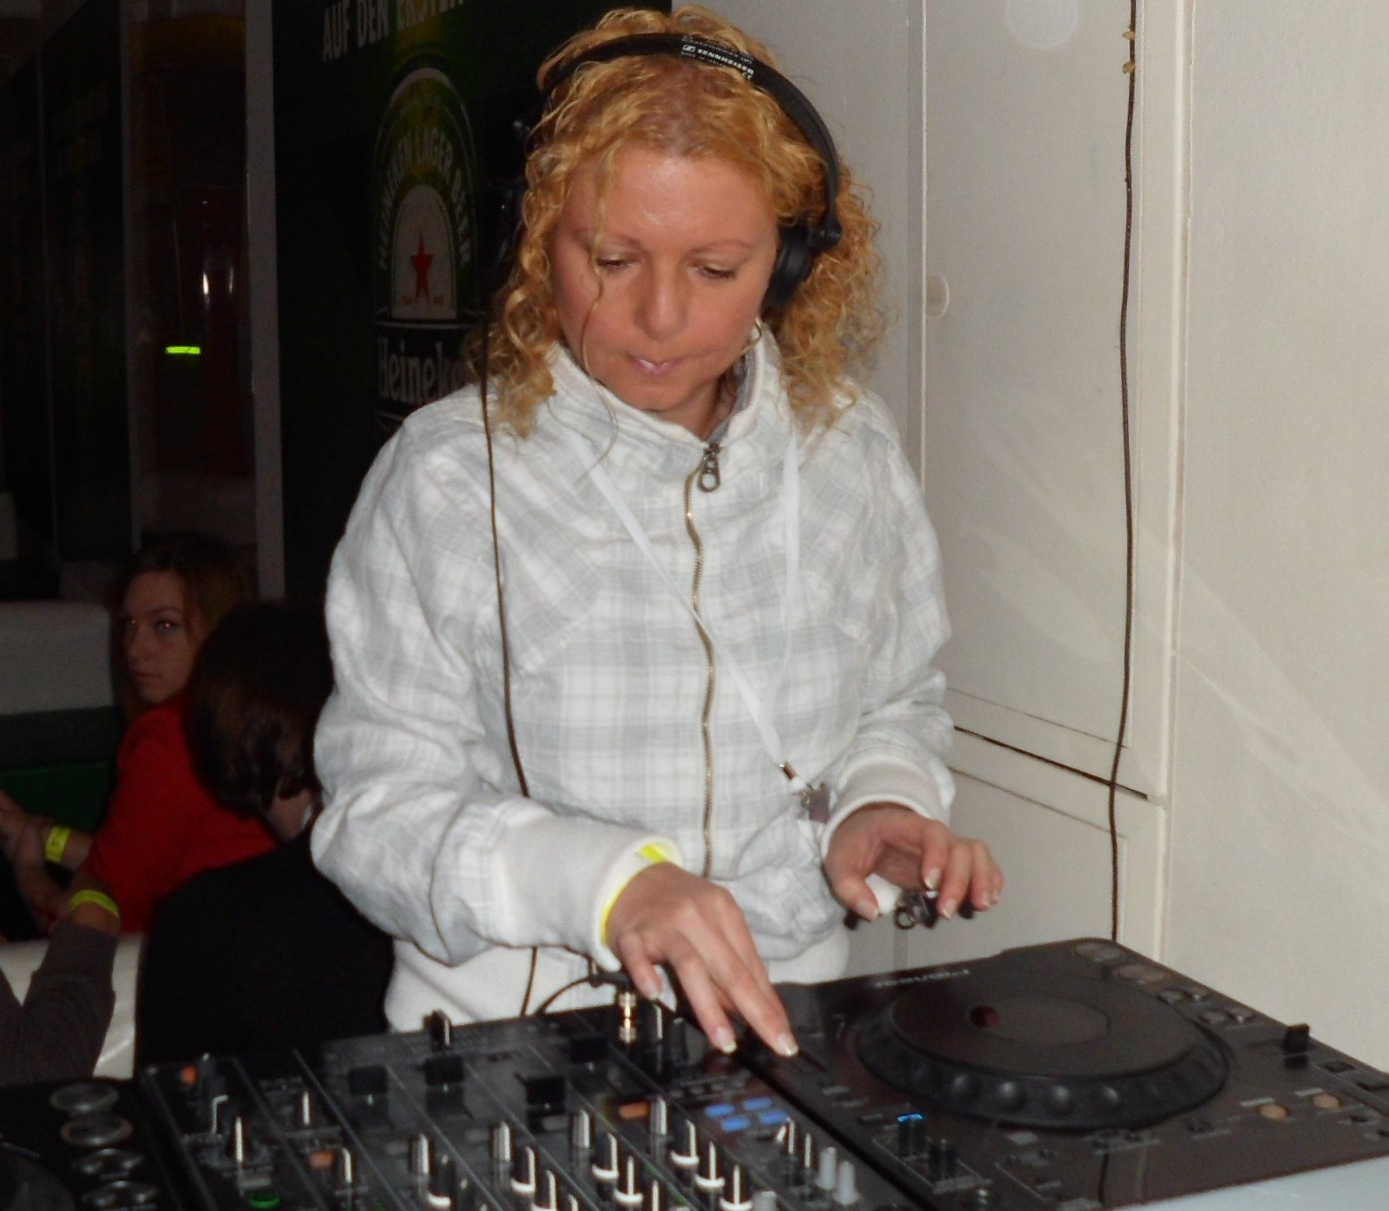 Berlin Summer Rave DJ-Contest: Carina Movitz